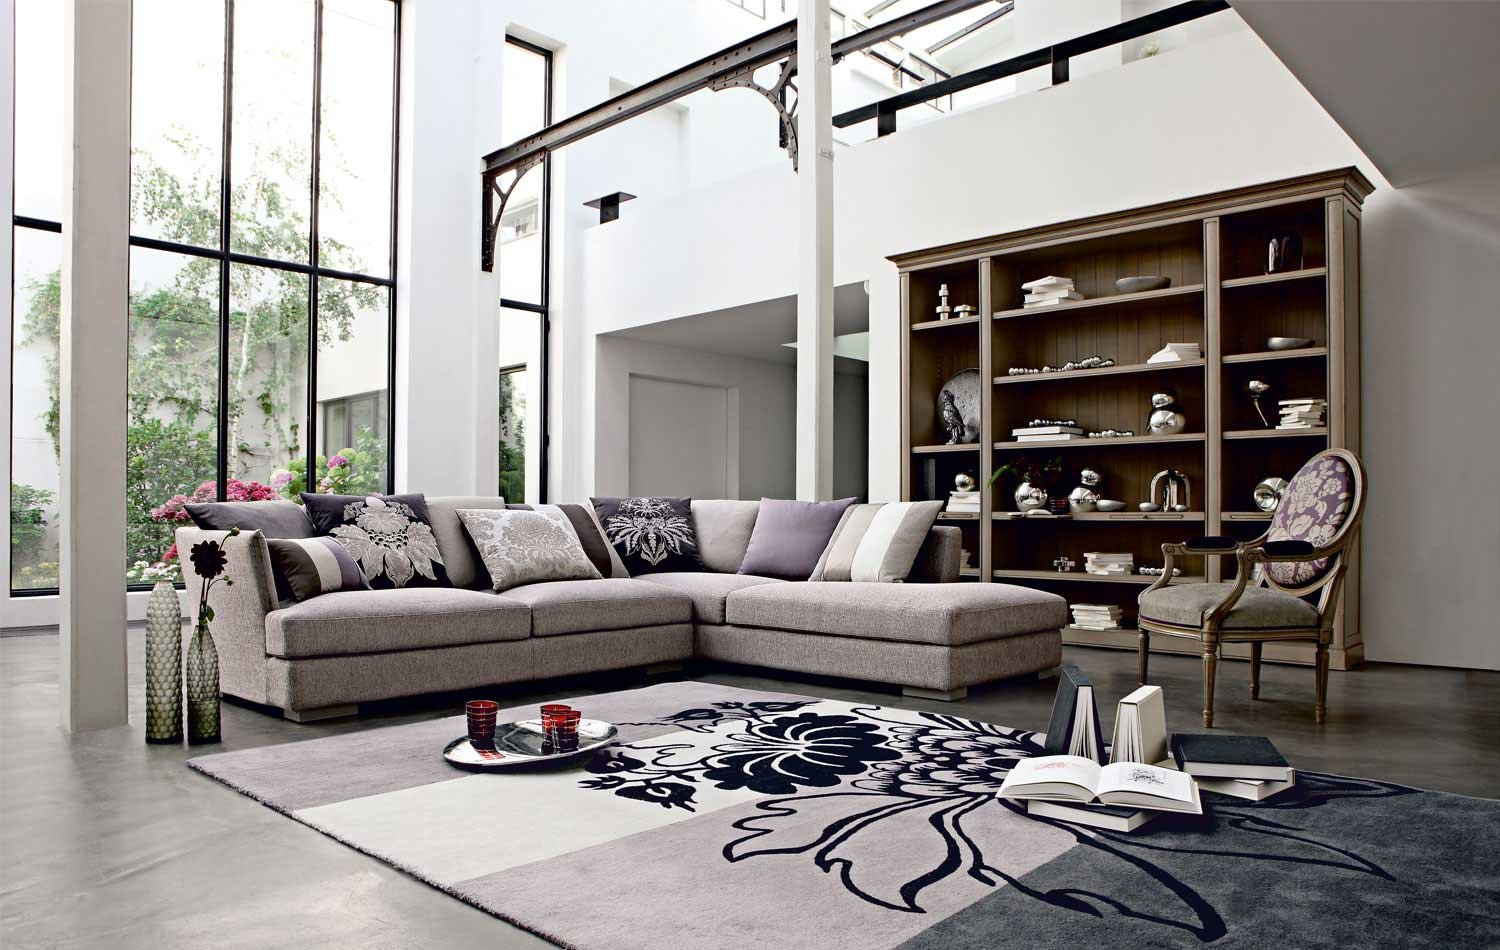 Modern Living Room Unique Living Room Inspiration 120 Modern sofas by Roche Bobois